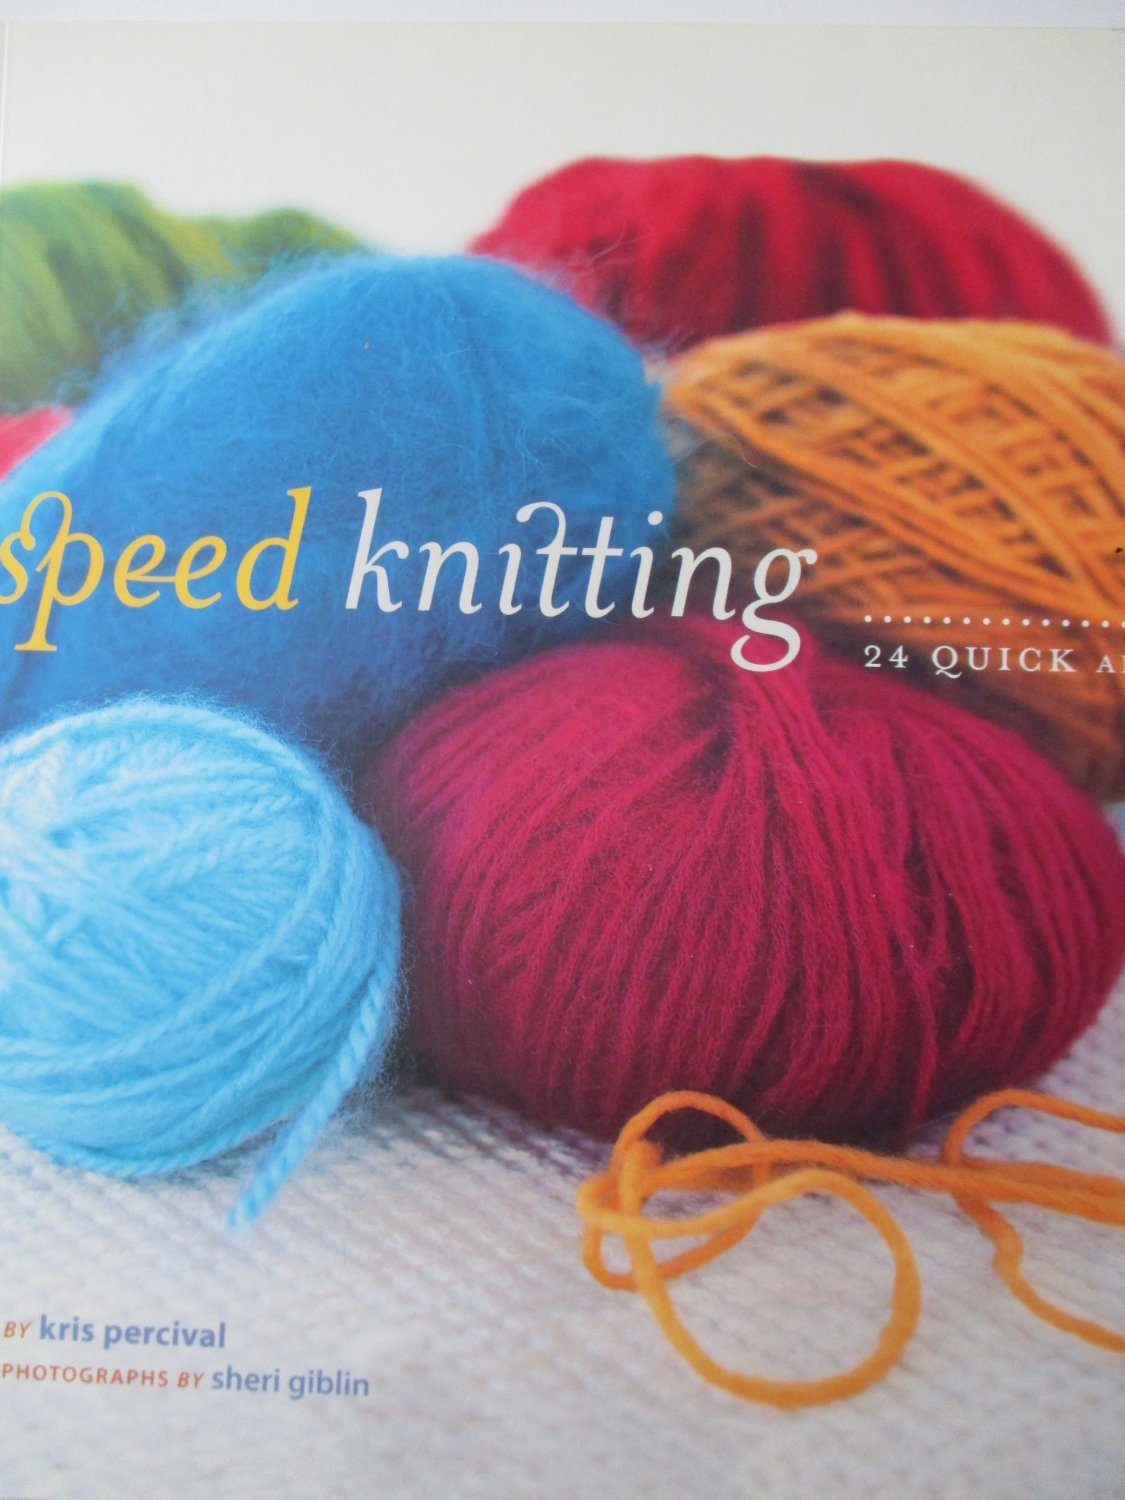 Speed Knitting: 24 Quick and Easy Projects Paperback Kris Percival